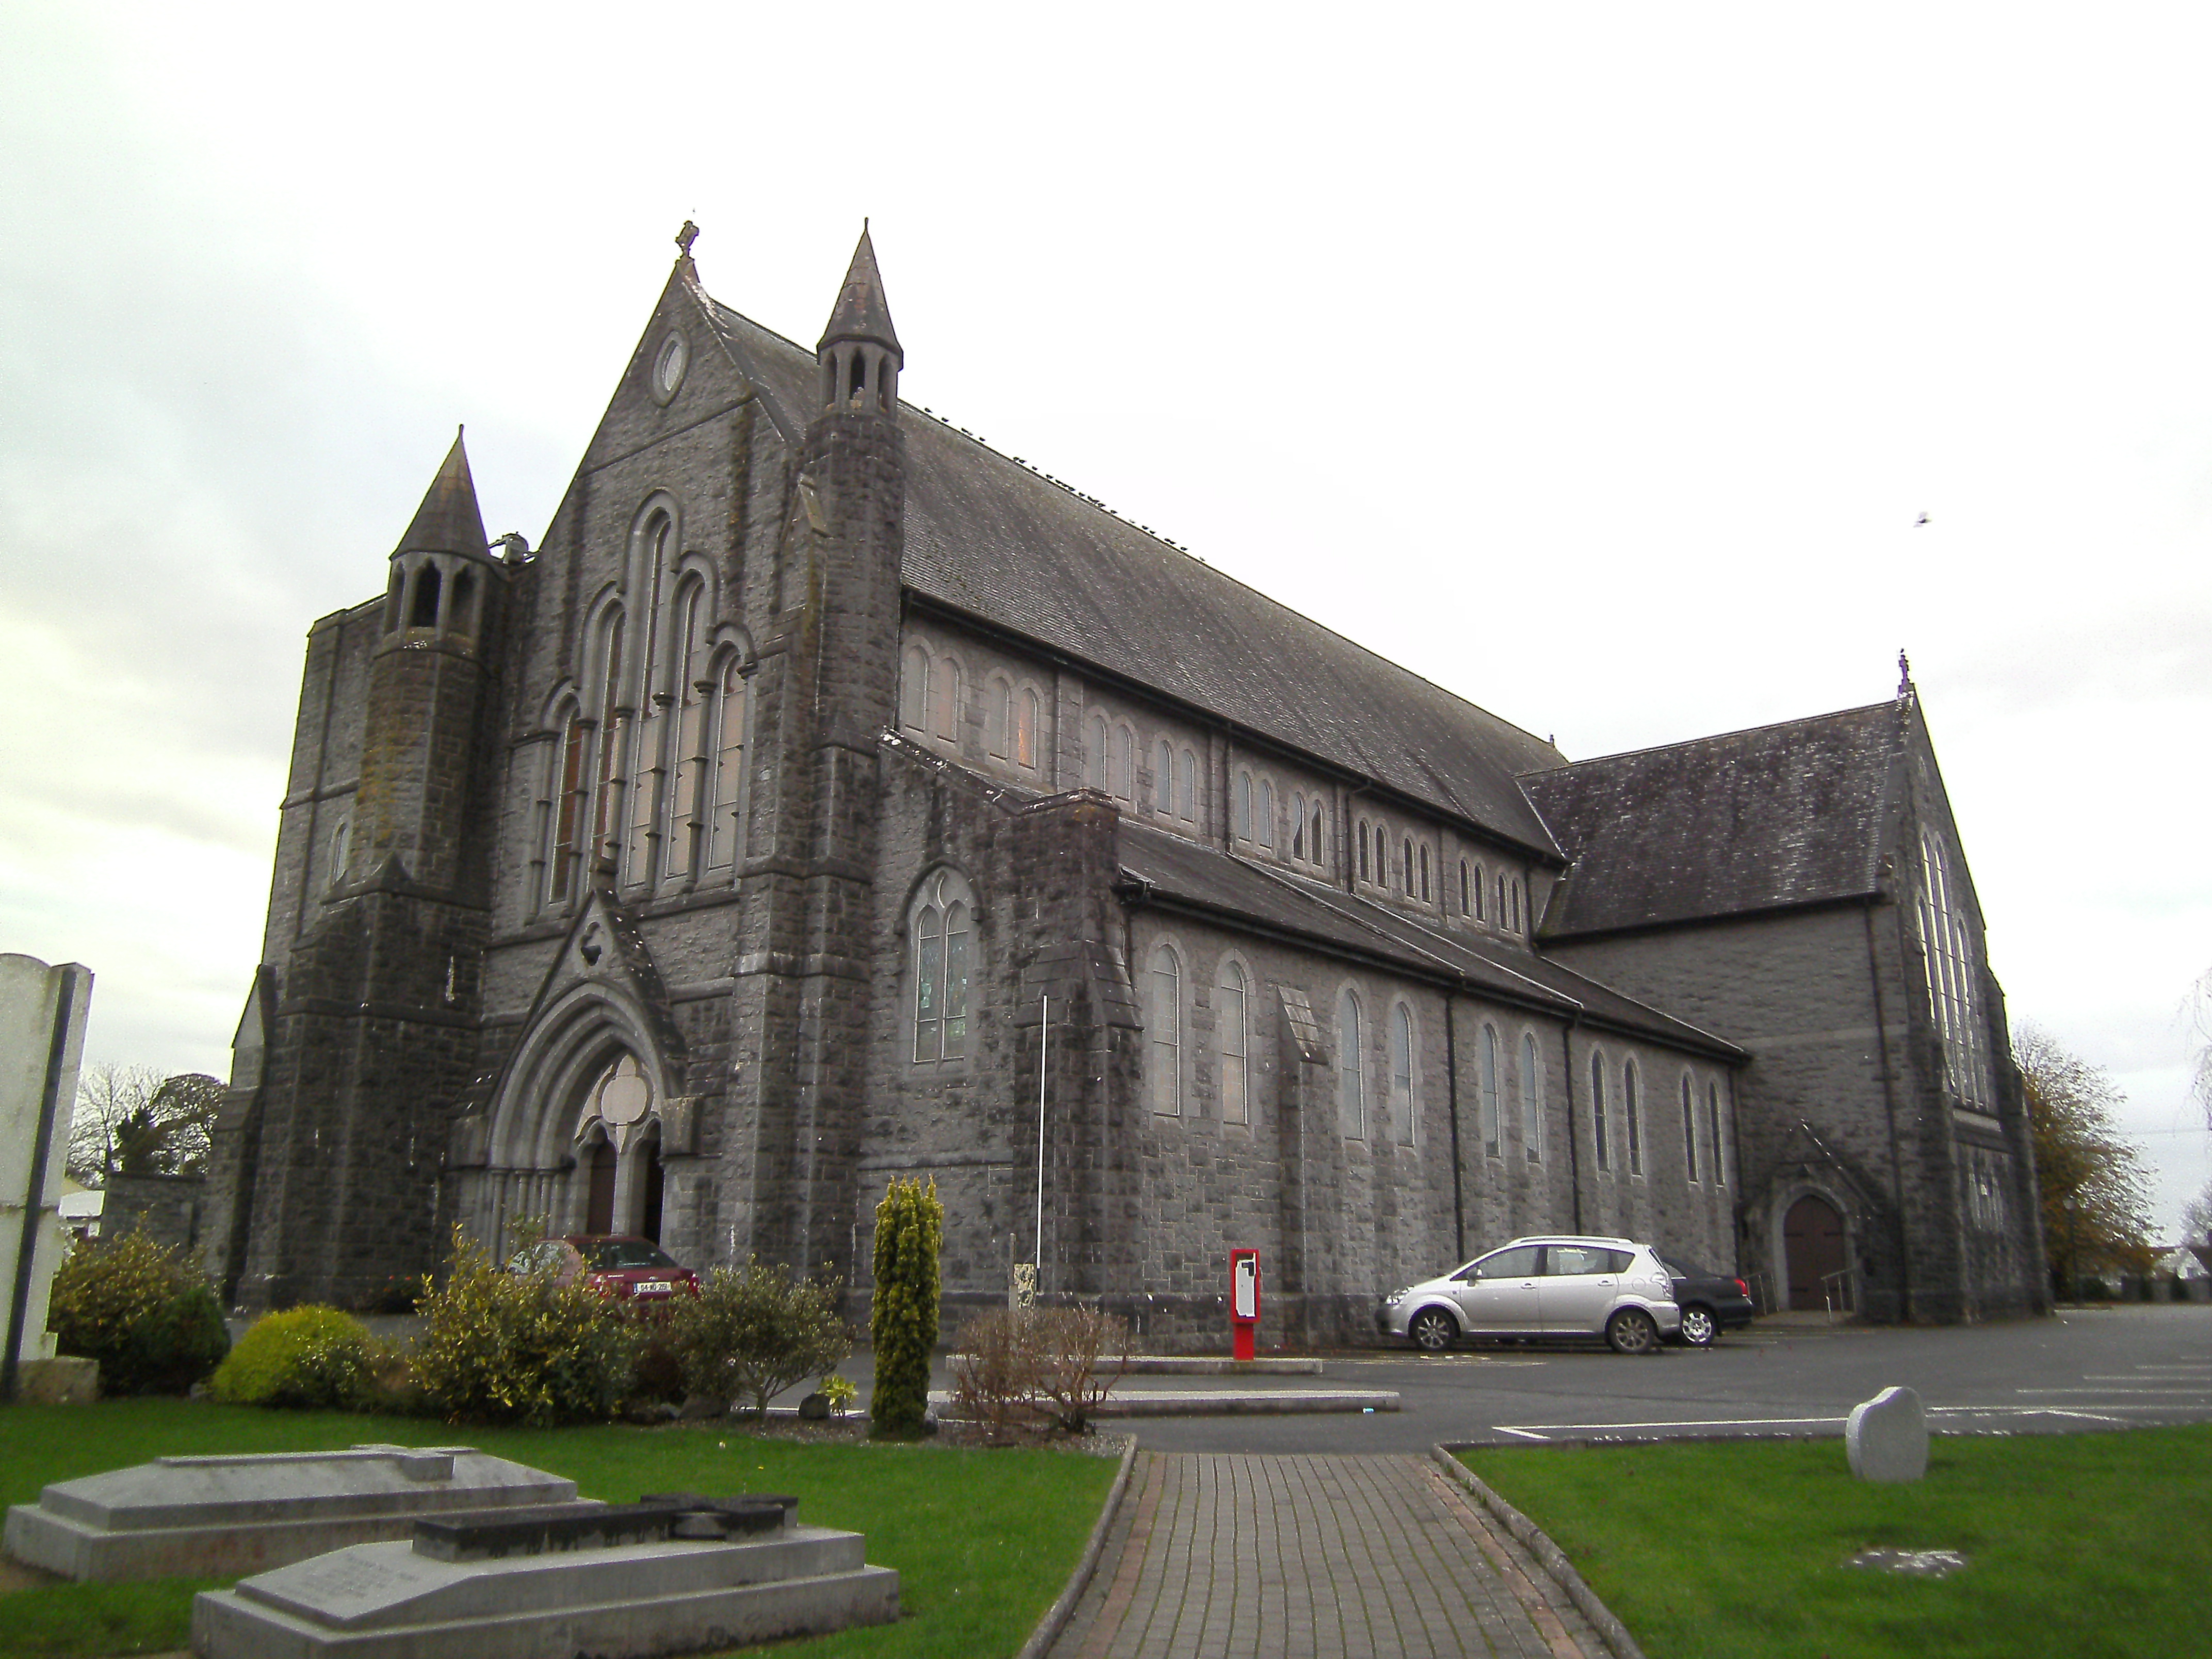 catholic church in ireland essay Reclaiming the spirit of samhain (samhain is a gaelic cultural, pre-christian, pagan, festival marking the end of the harvest season and the beginning of winteror the darker half of the year.